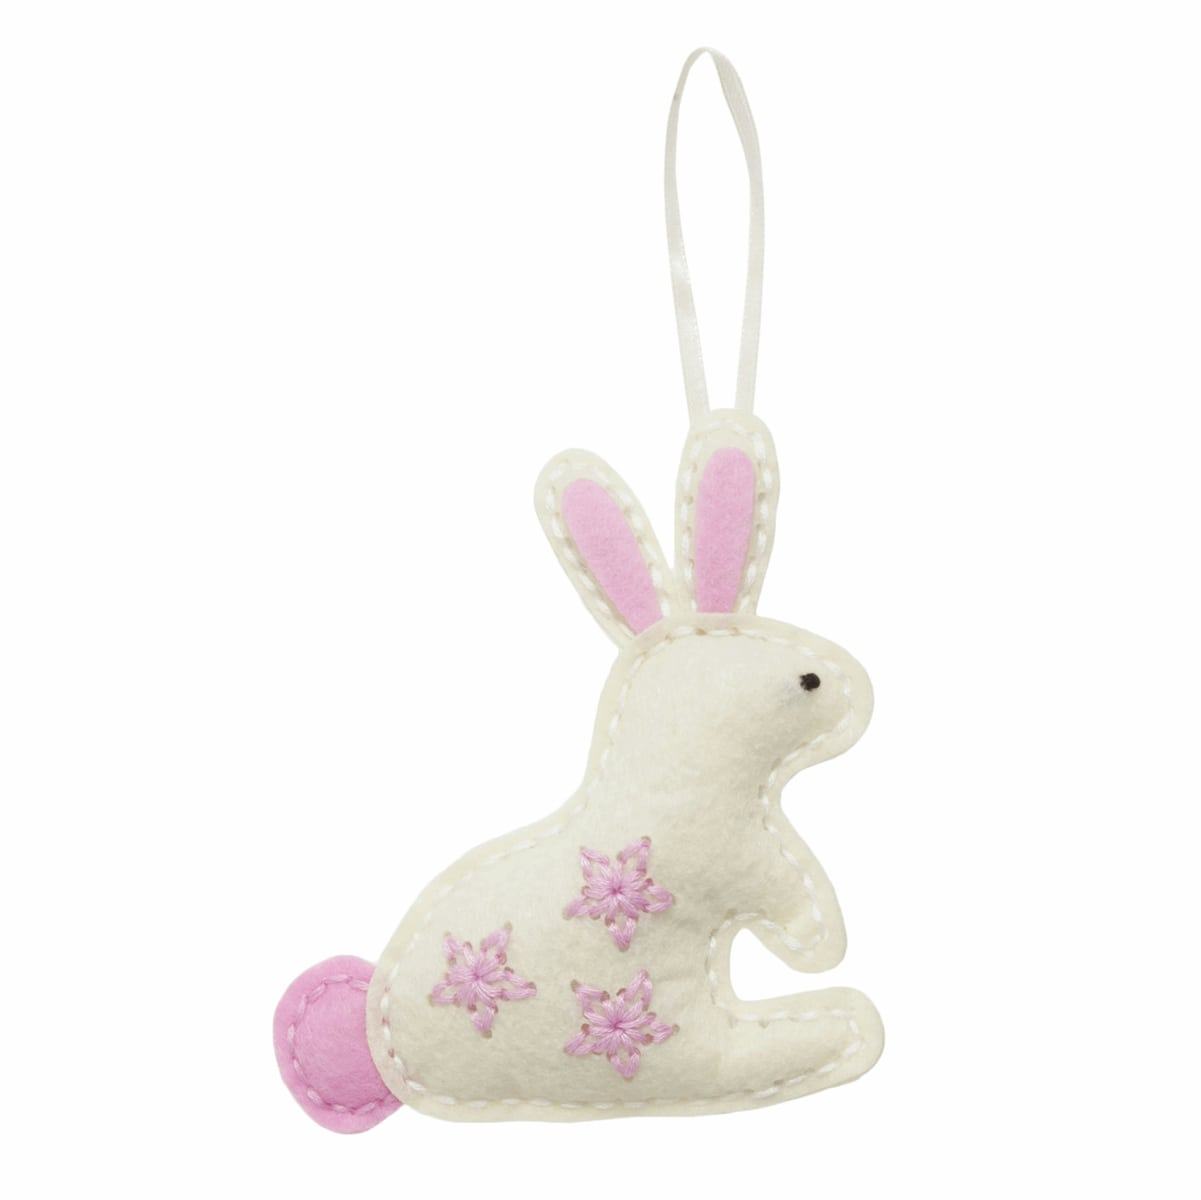 Children's Felt Decoration Kit: Bunny Rabbit - Vera Fabrics